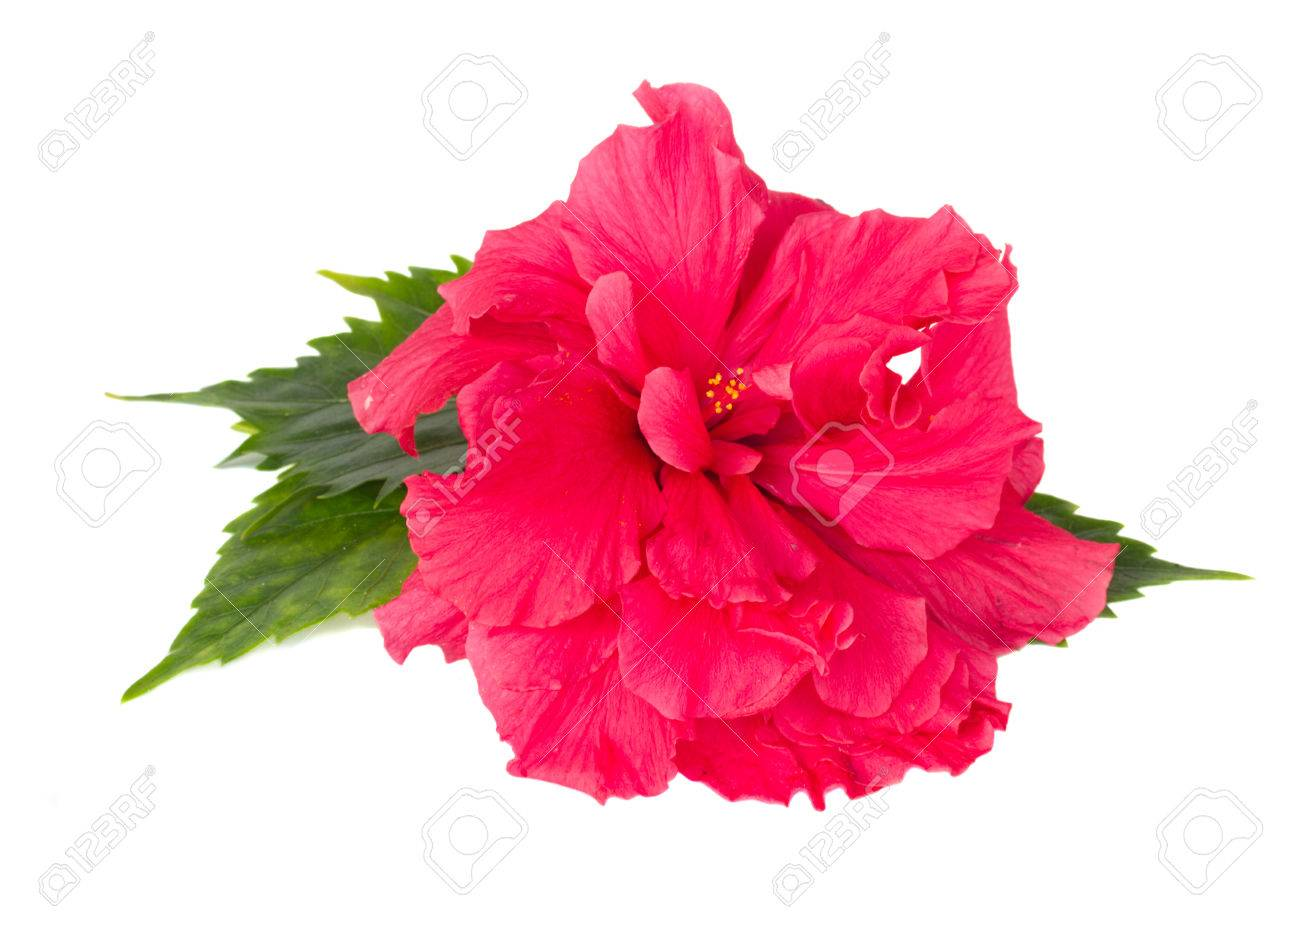 Pink Fresh Hibiscus Flower With Green Leaves Isolated On White